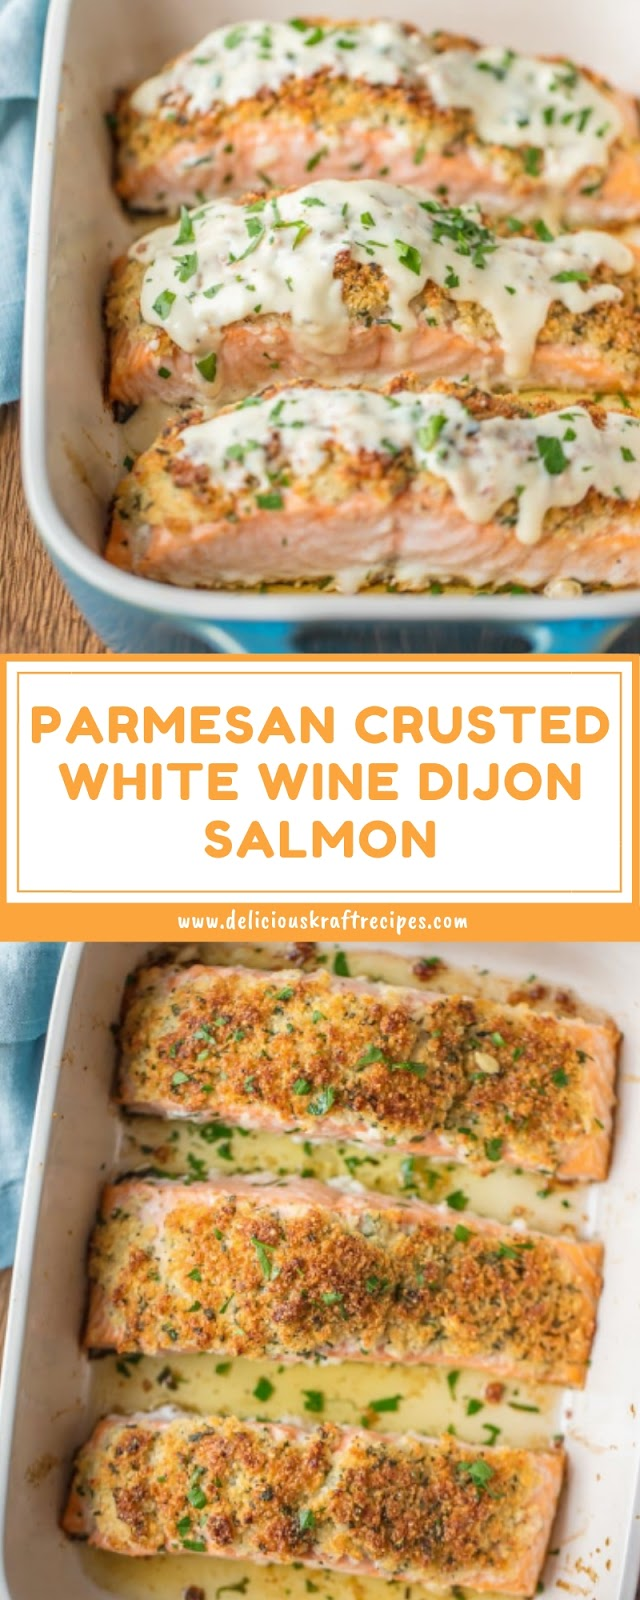 PARMESAN CRUSTED WHITE WINE DIJON SALMON